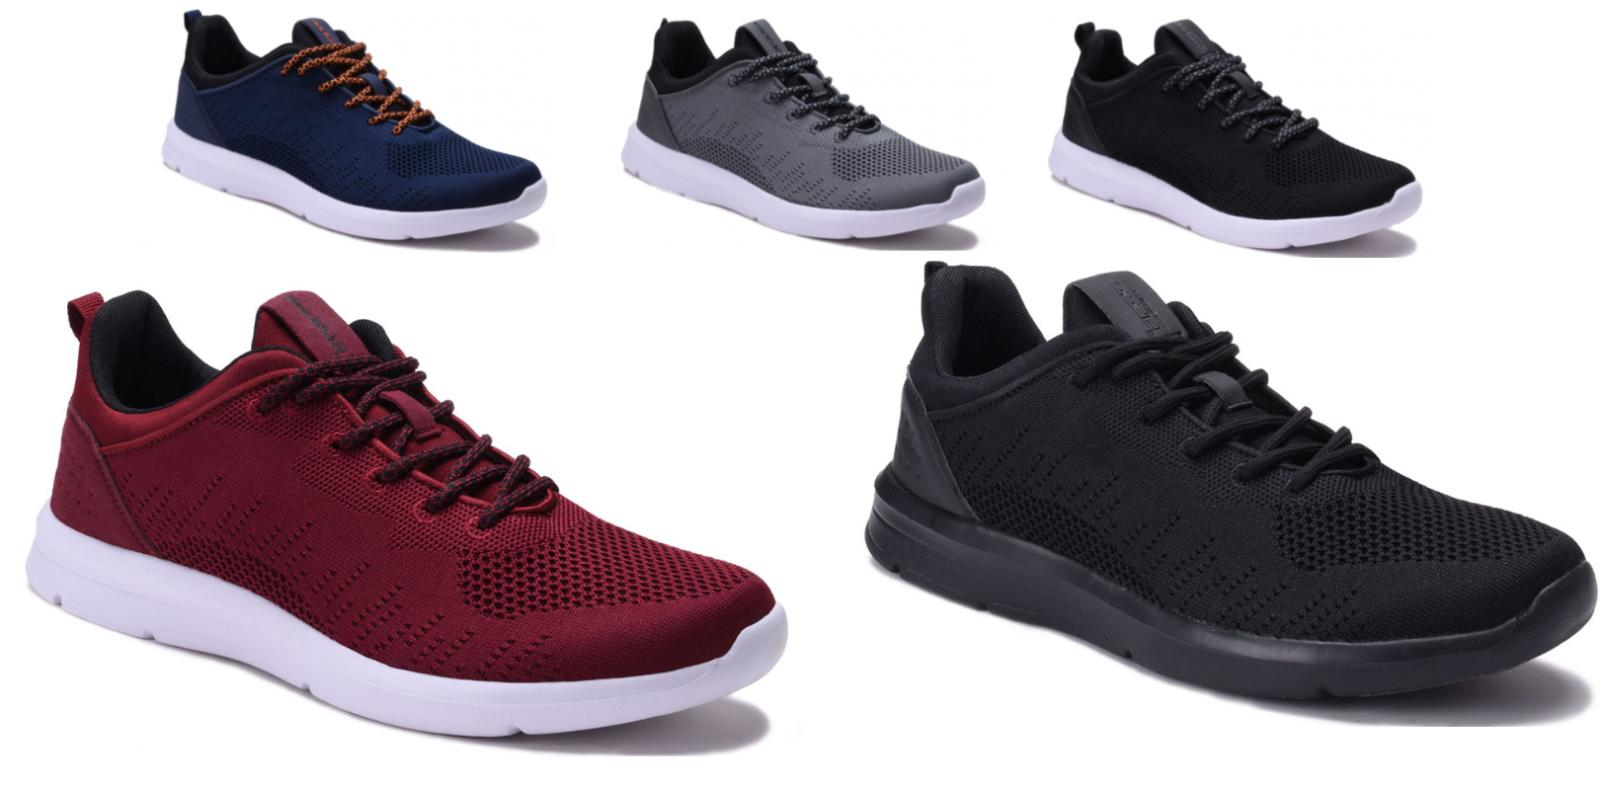 mens athletic running tennis shoes light weight